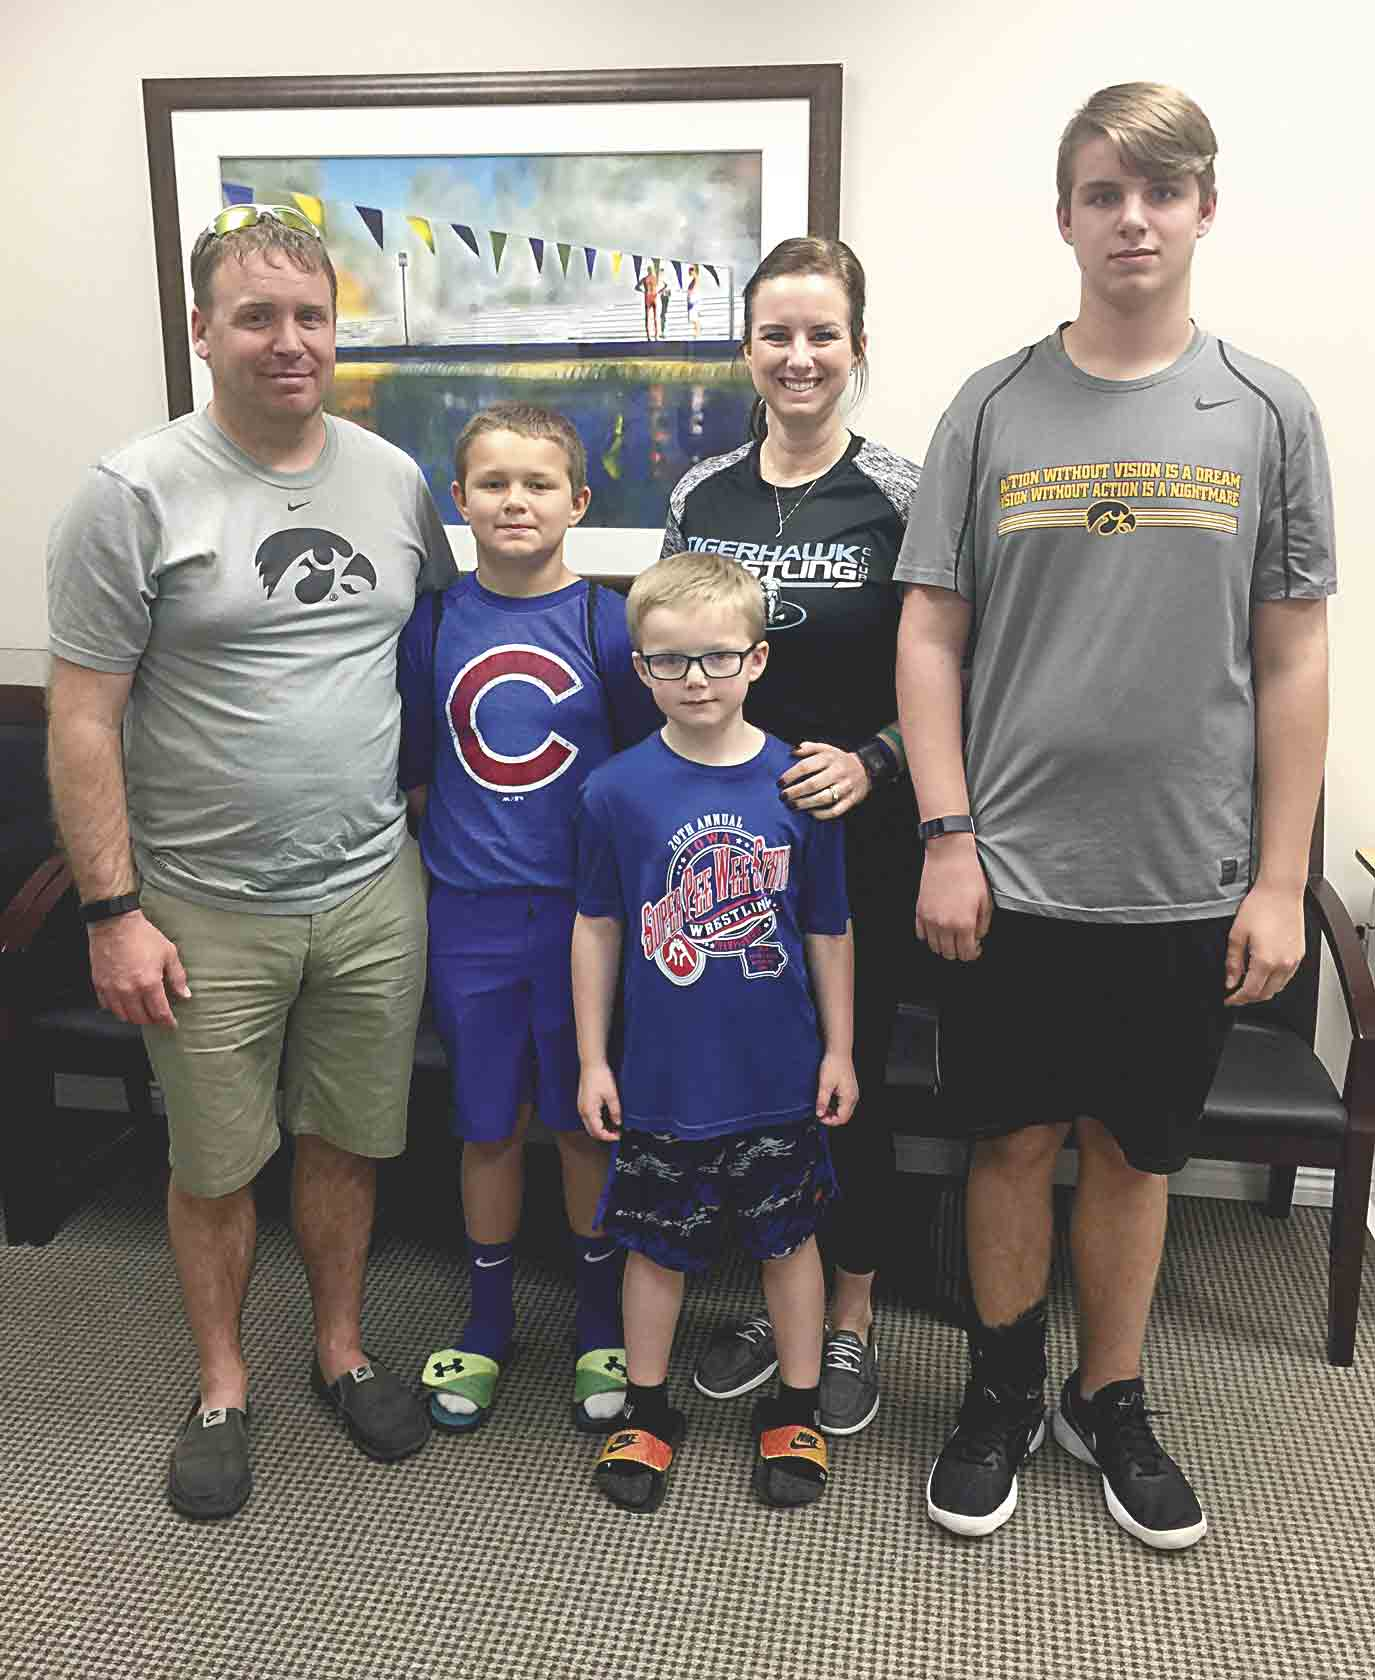 Chase Aeschliman (far right) recently visited the Institute for Neurological Recovery in Boca Raton, Fla., to receive an injection of Enbrel. Enbrel is a FDA-approved anti-inflammatory drug used to treat rheumatoid arthritis that Dr. Edward Tobinick is using to treat stroke survivors. The...